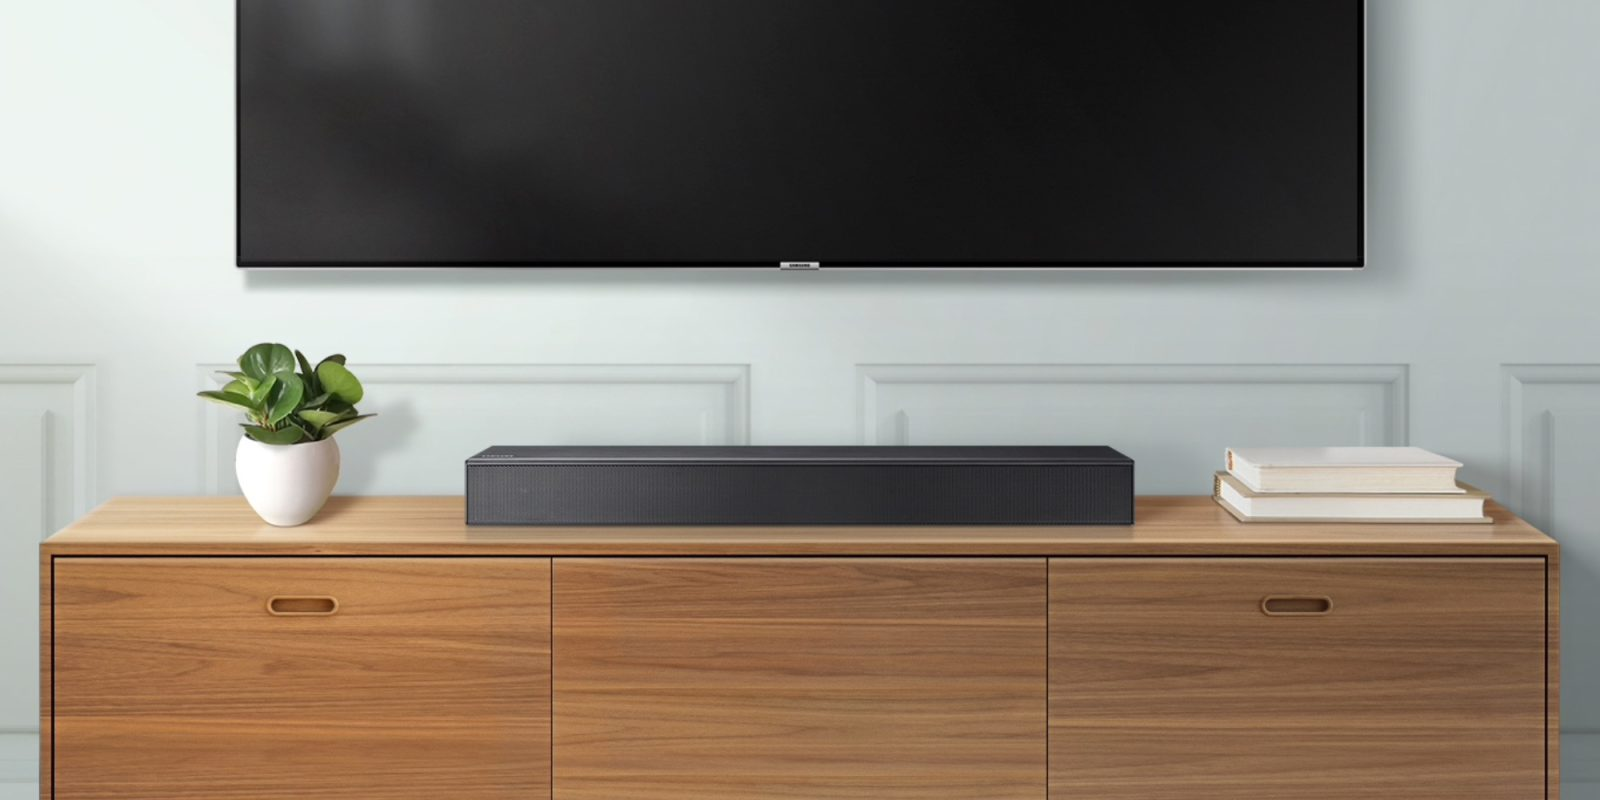 Samsung's $120 TV Mate Soundbar belongs on your entertainment center ($48 off)